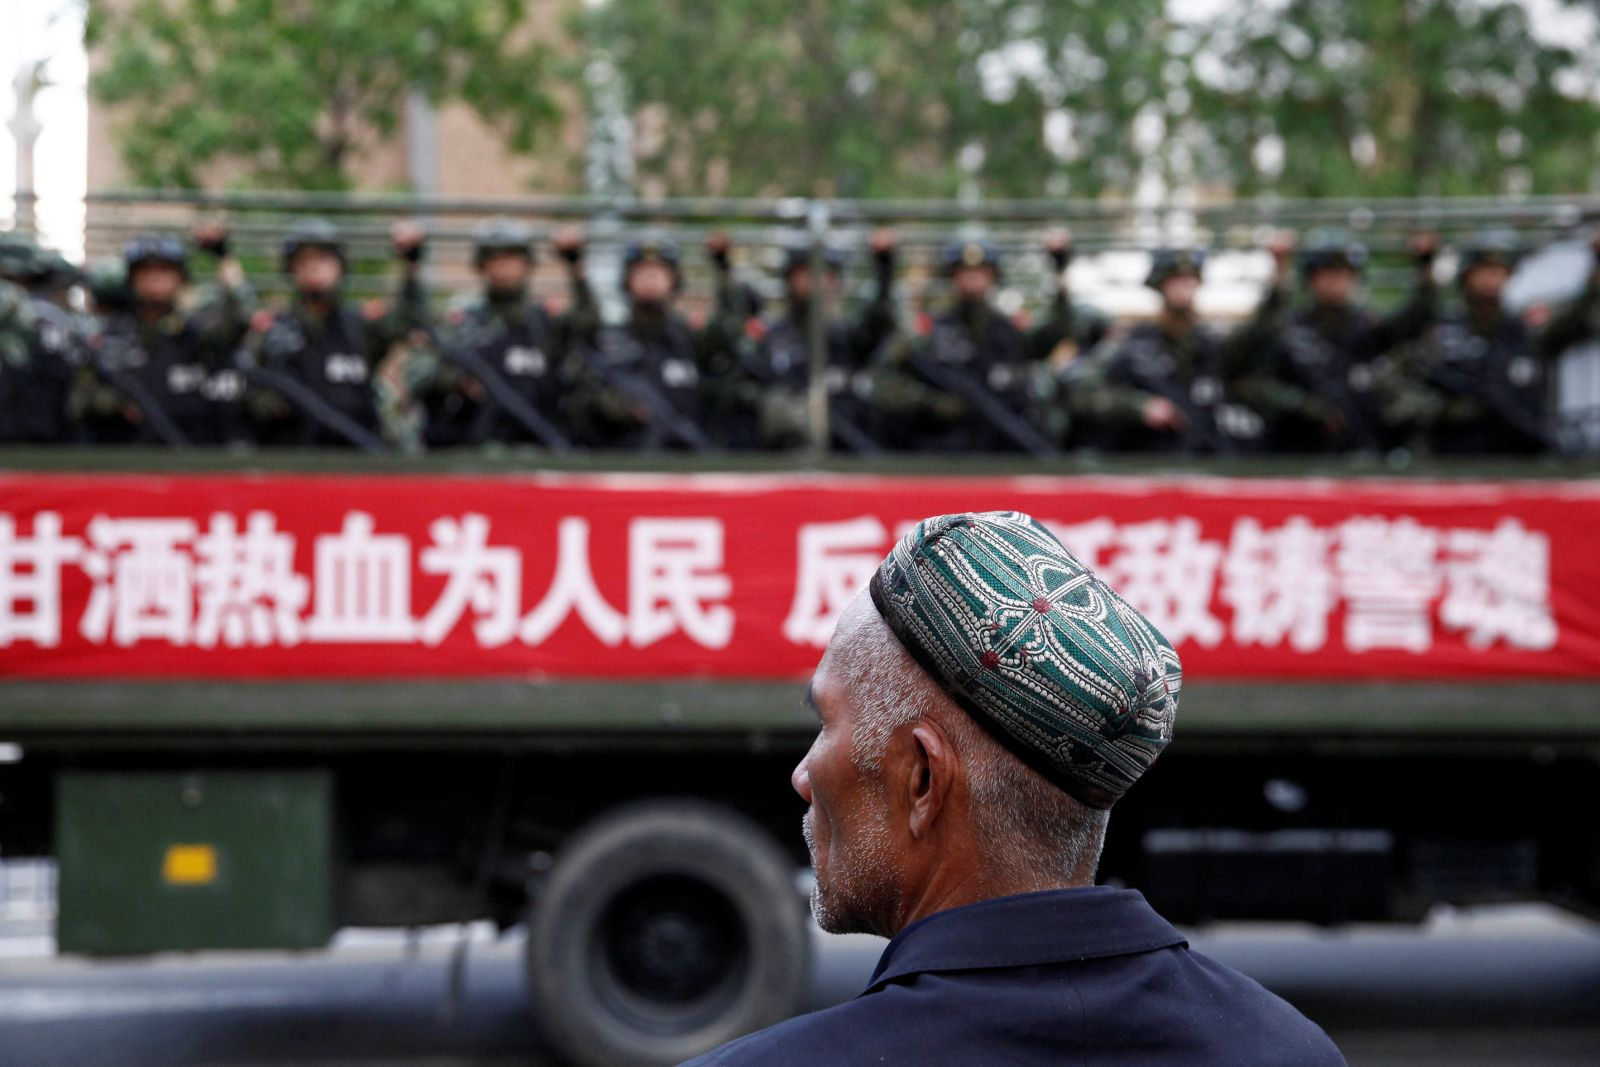 Oppression of Uyghurs in China Only 'Gives Rise to Hatred,' Say Their Families in Japan